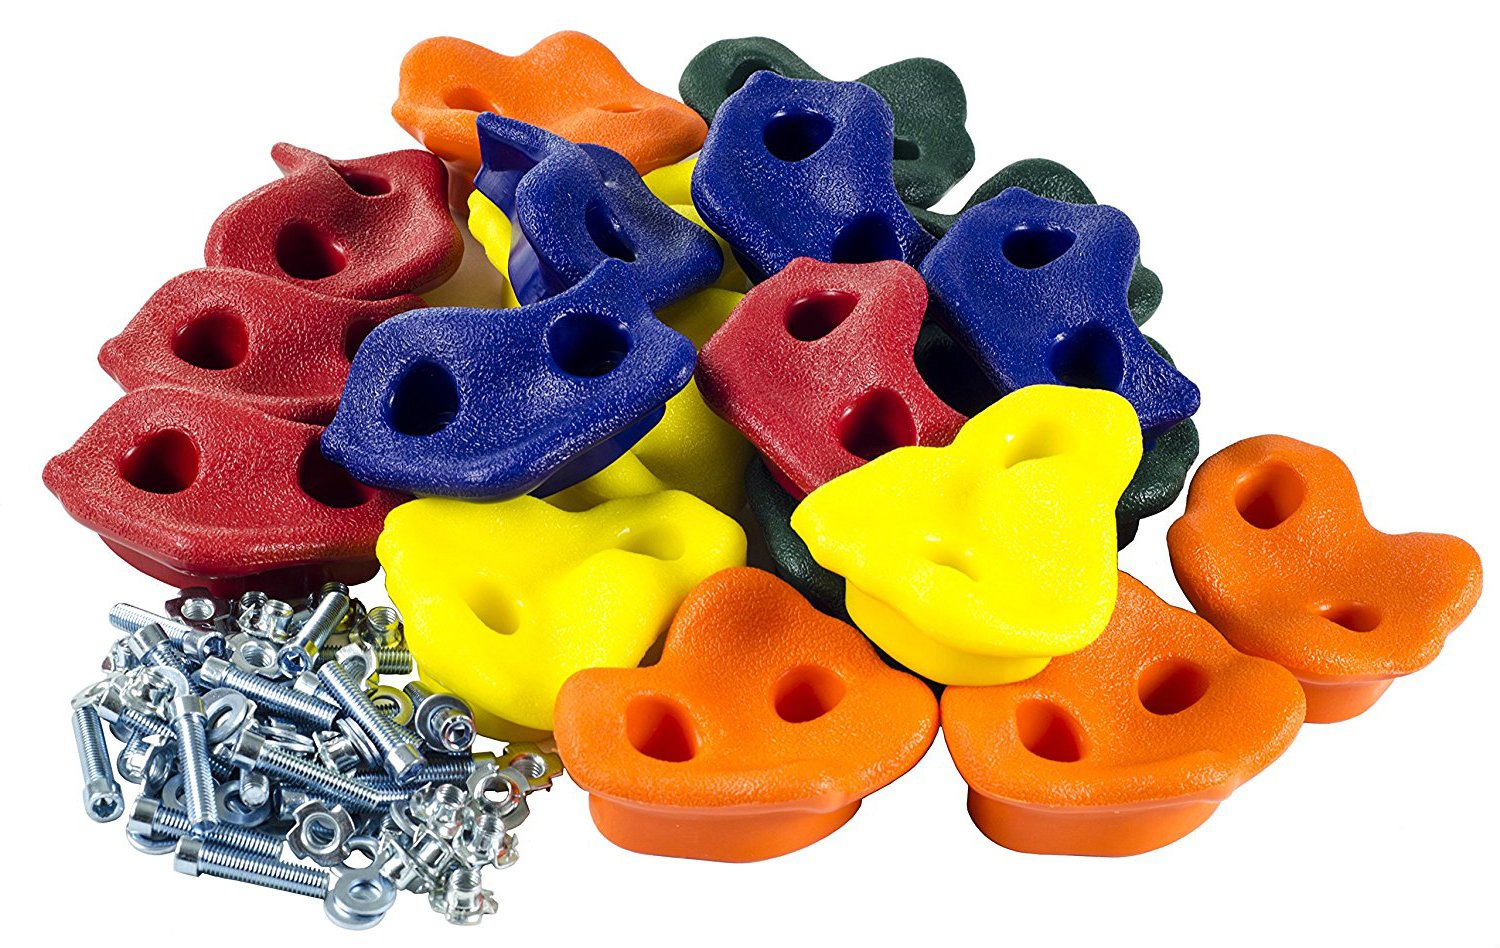 Amazon.com: 20 Extra Large Deluxe Rock Climbing Holds - with ...